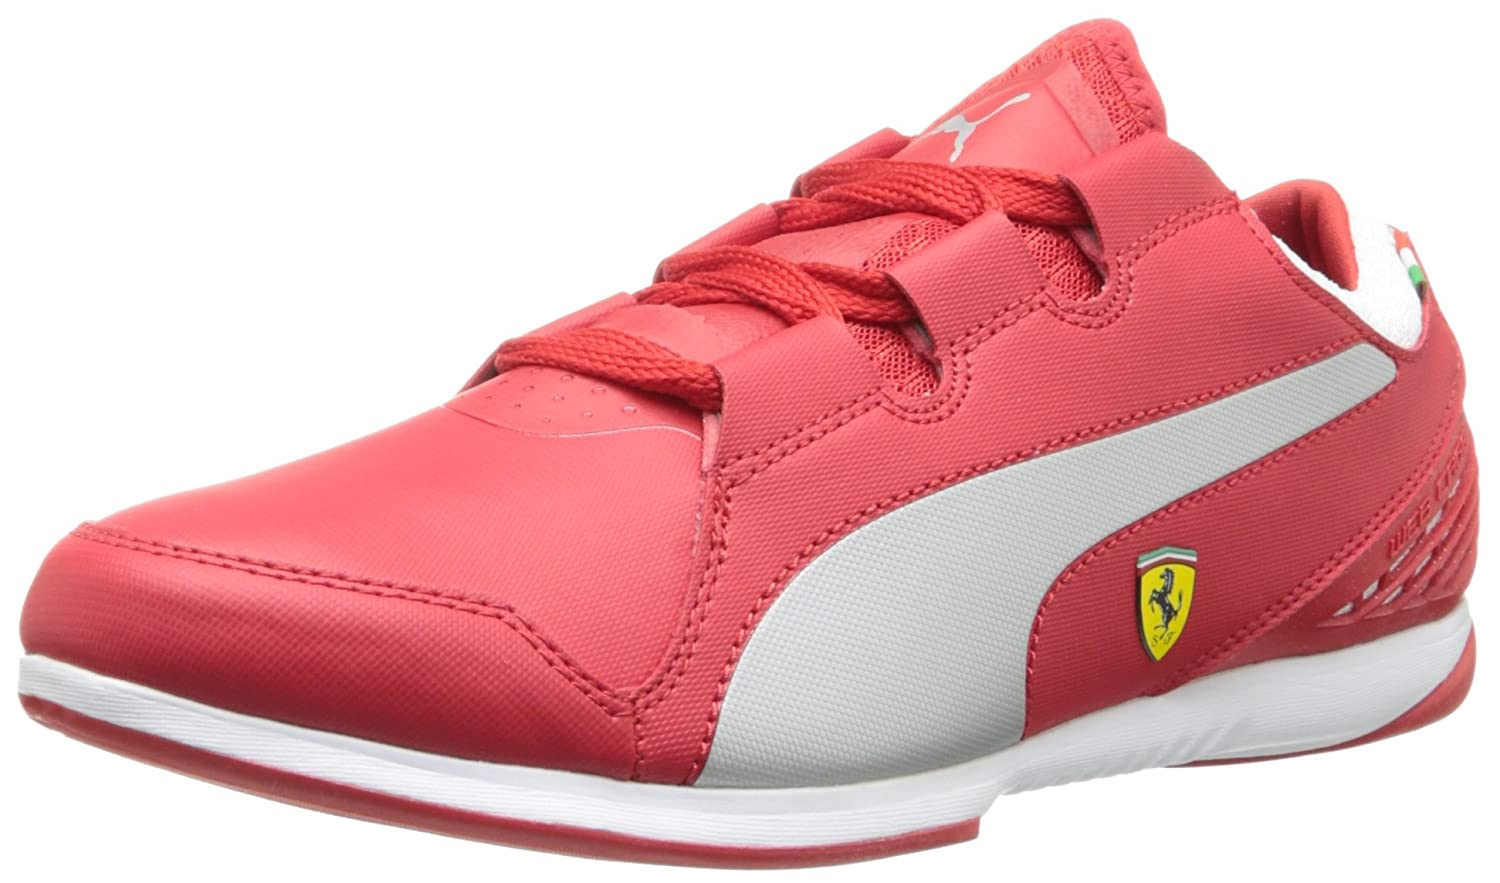 s ferrari compare ultra cat kids drift puma trainers